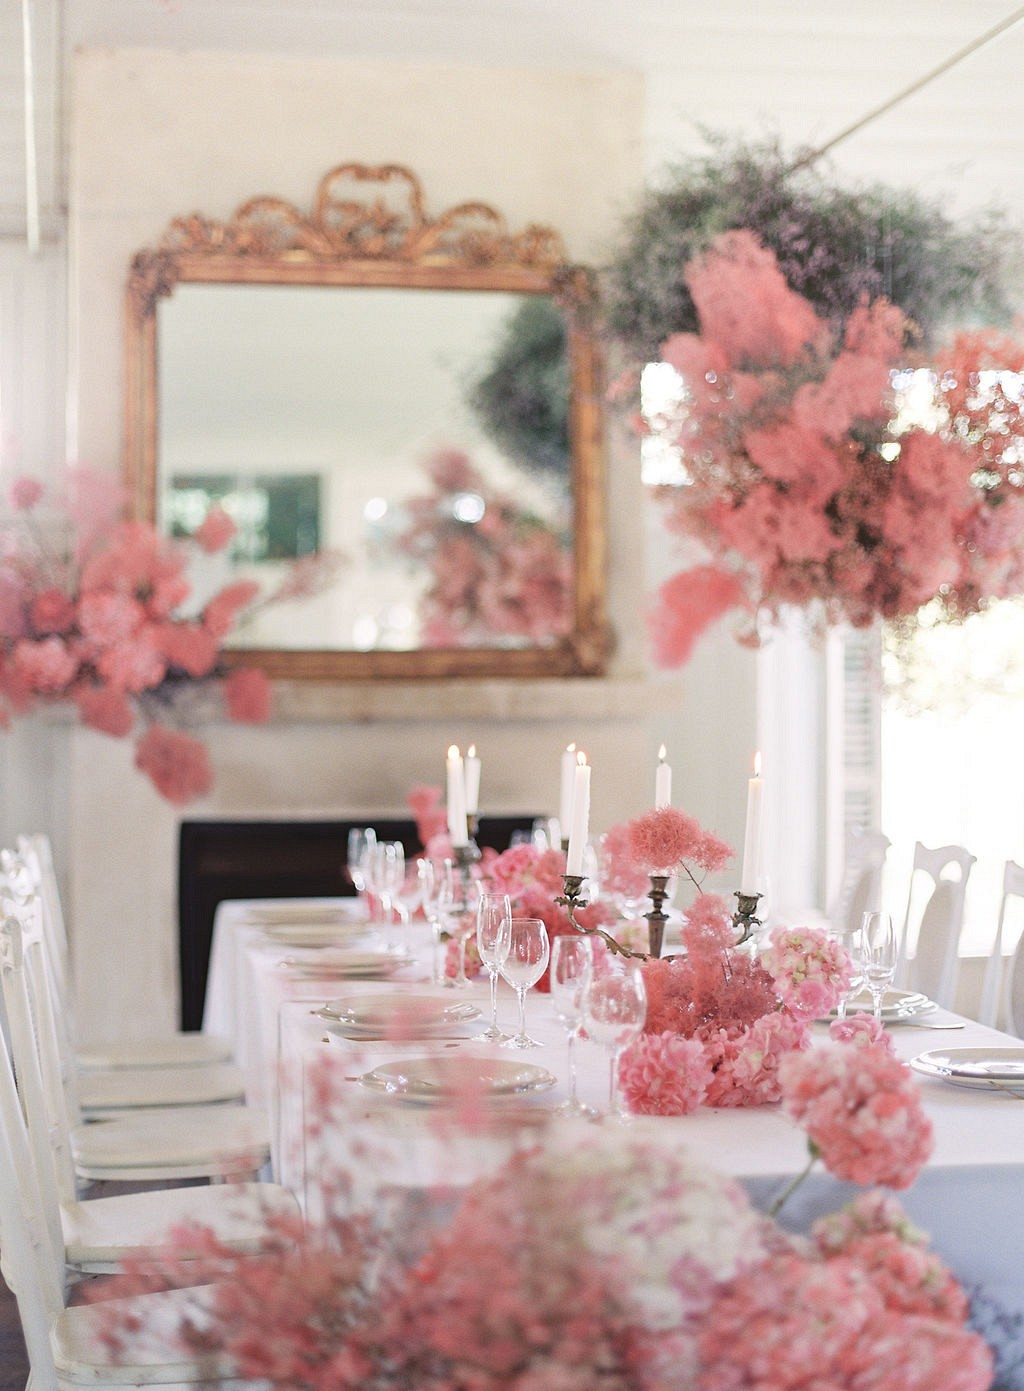 a refined wedding reception table with pink blooms and smoke bush on it and over it